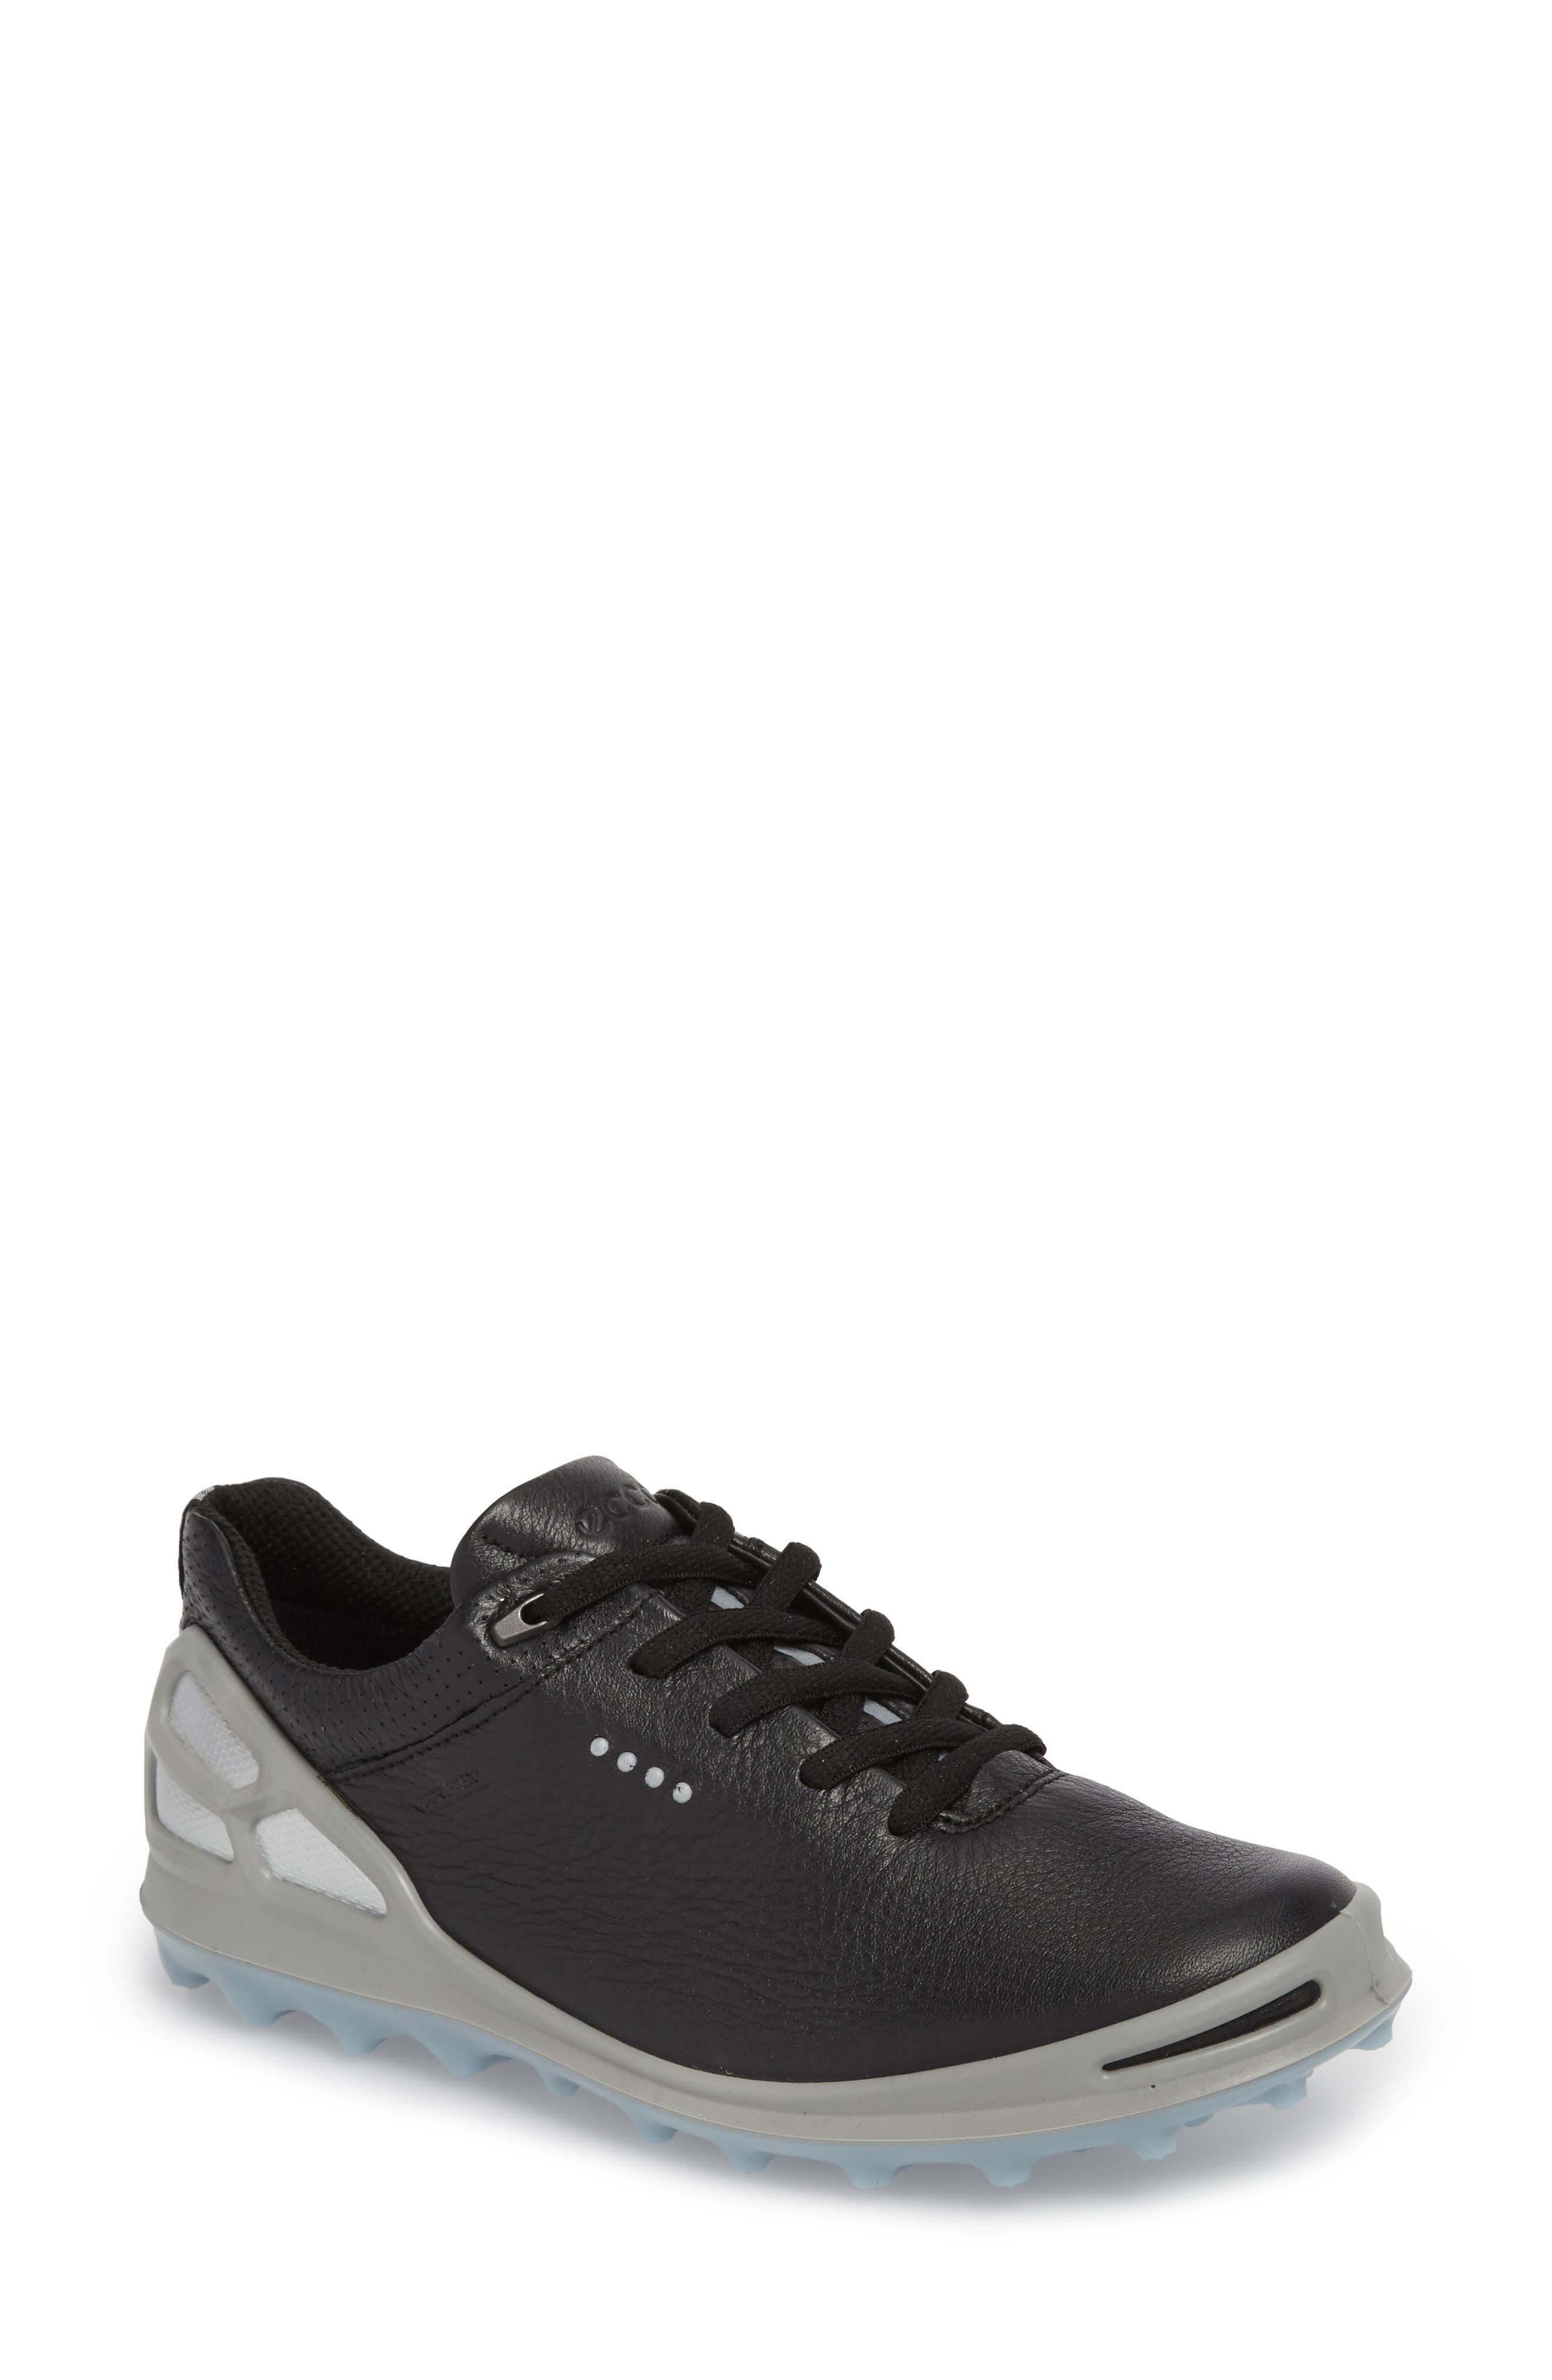 Golf Cage Pro Gore-Tex<sup>®</sup> Waterproof Shoe,                         Main,                         color, Black Leather